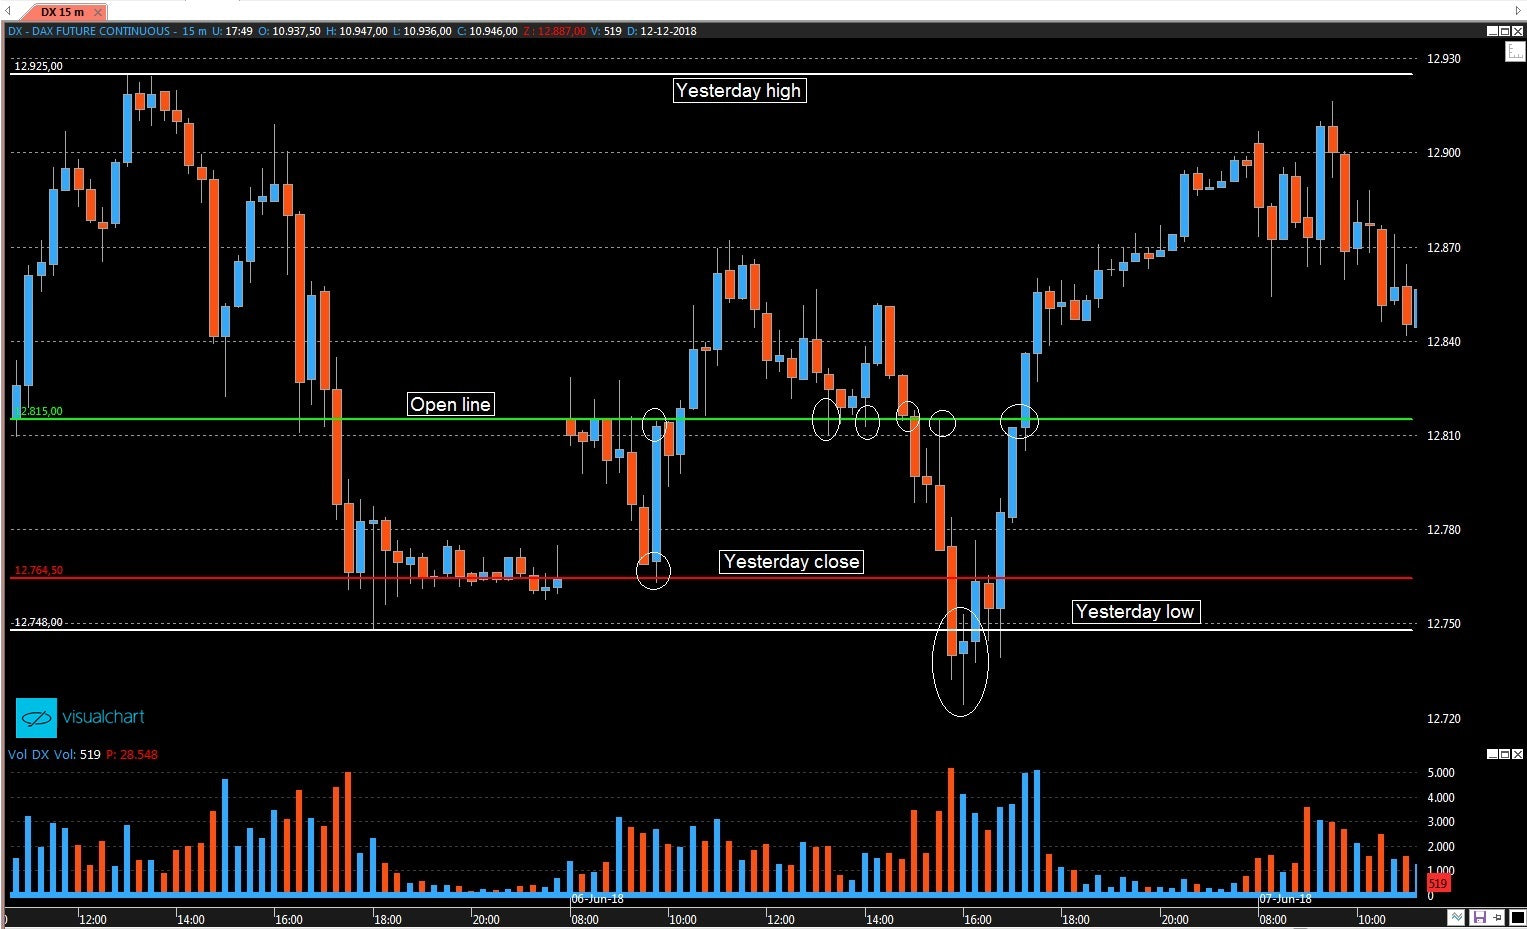 Intraday Exit Swing High Low